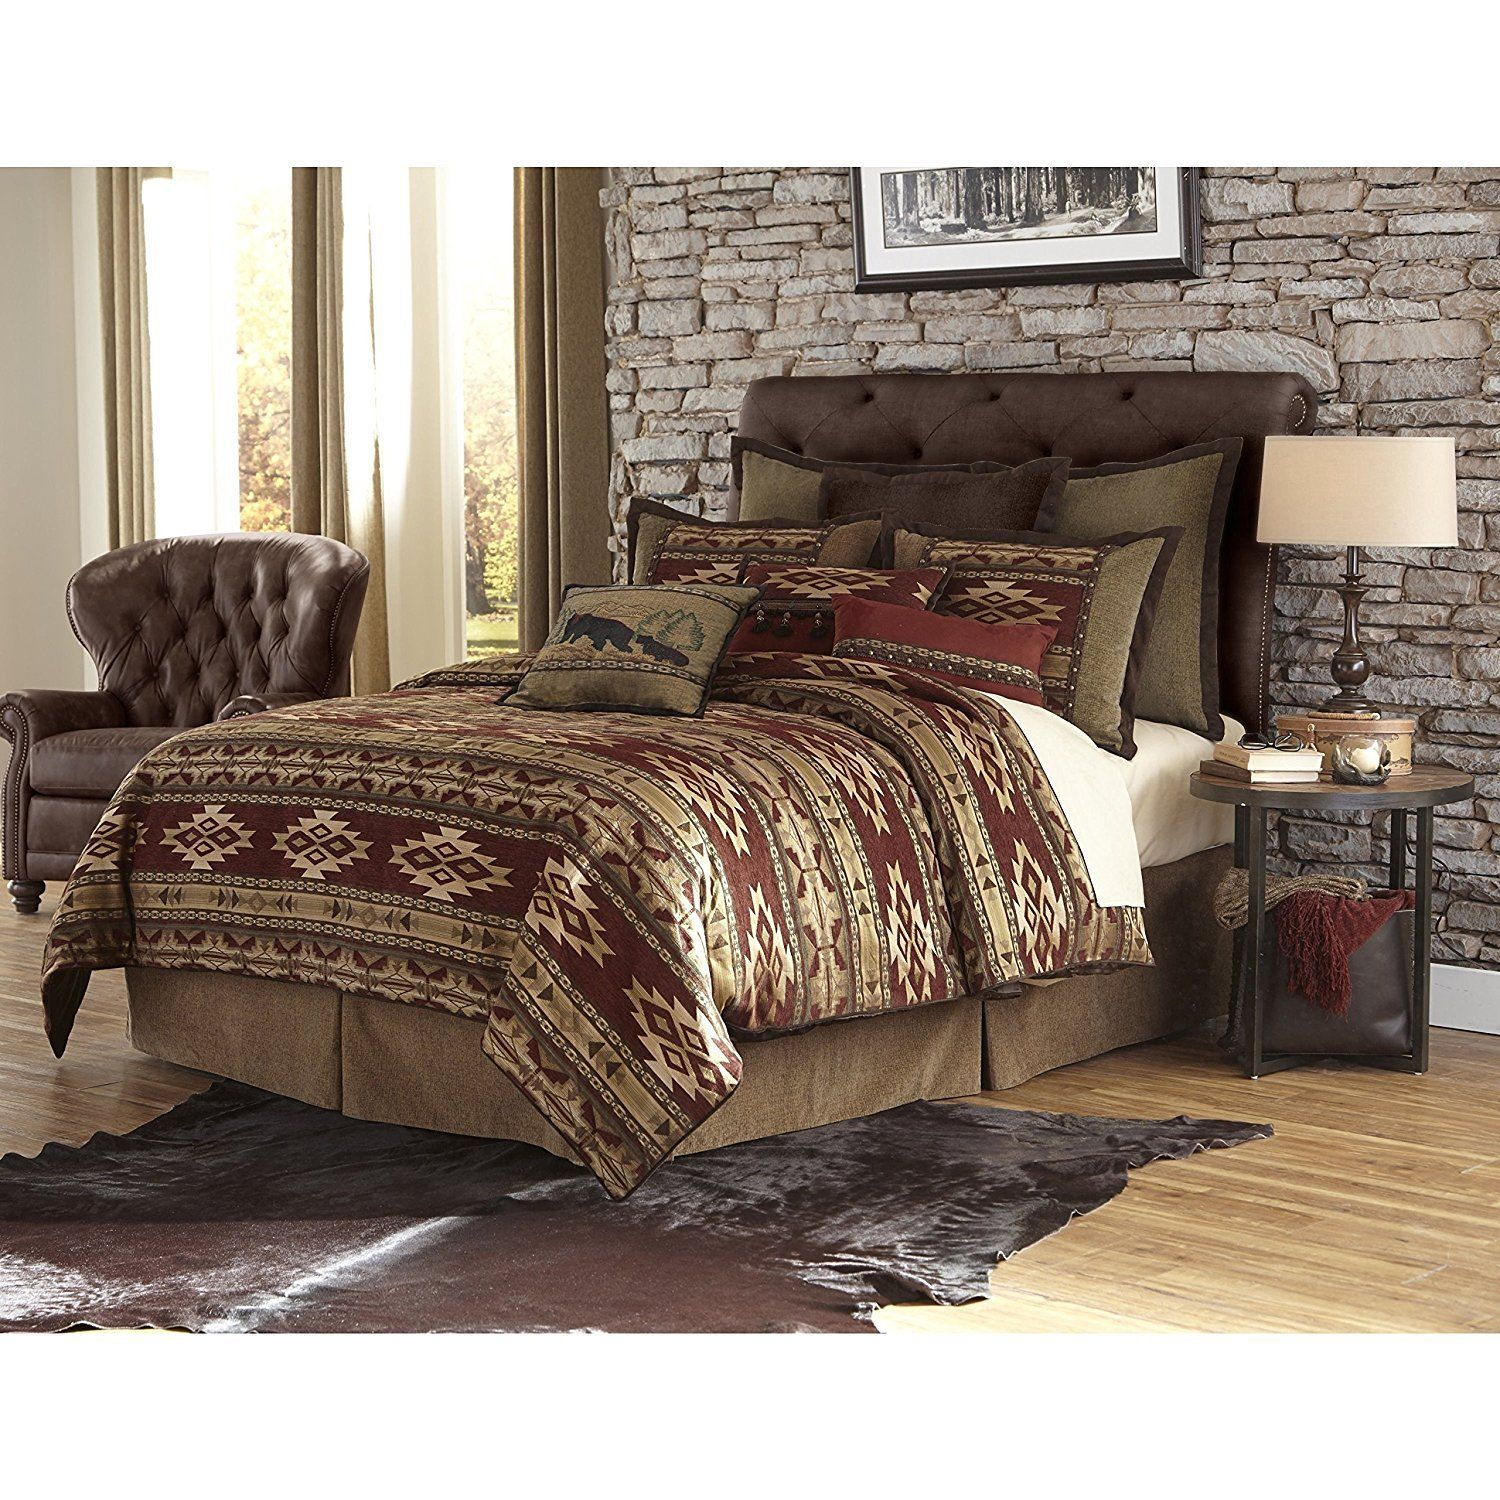 queen comforter an beloved covers enthrall set or pintuck belcourt target cov southwest sets twin color cheap comforters king harbor xl house beautiful cove full bedding dazzling grey nautical of cover duvet piece multi ikea size southwestern insert